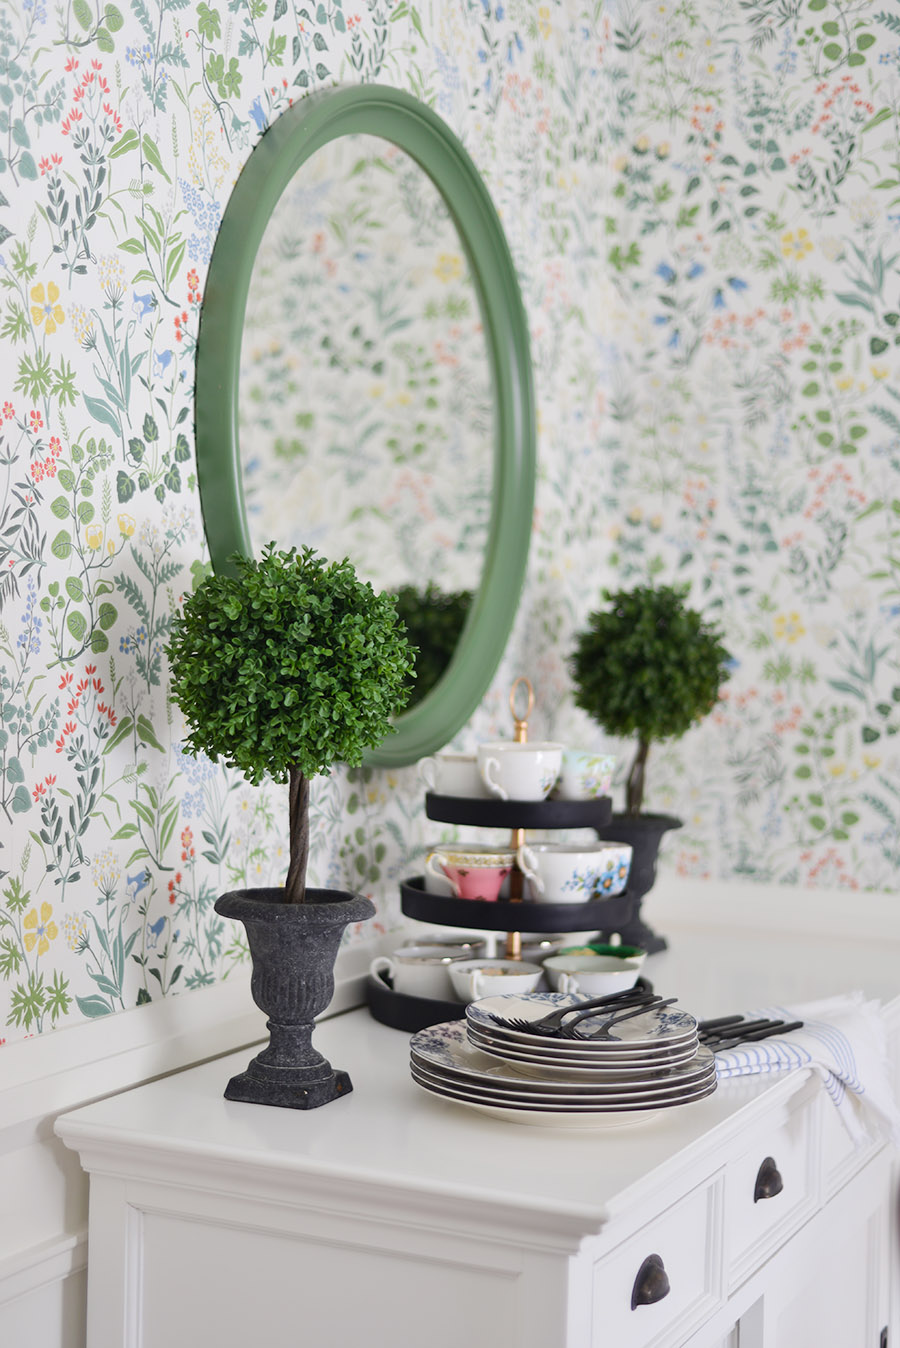 Scandianvian Borastapeter flora white wallpaper, green round mirror, buffet display, faux topiary